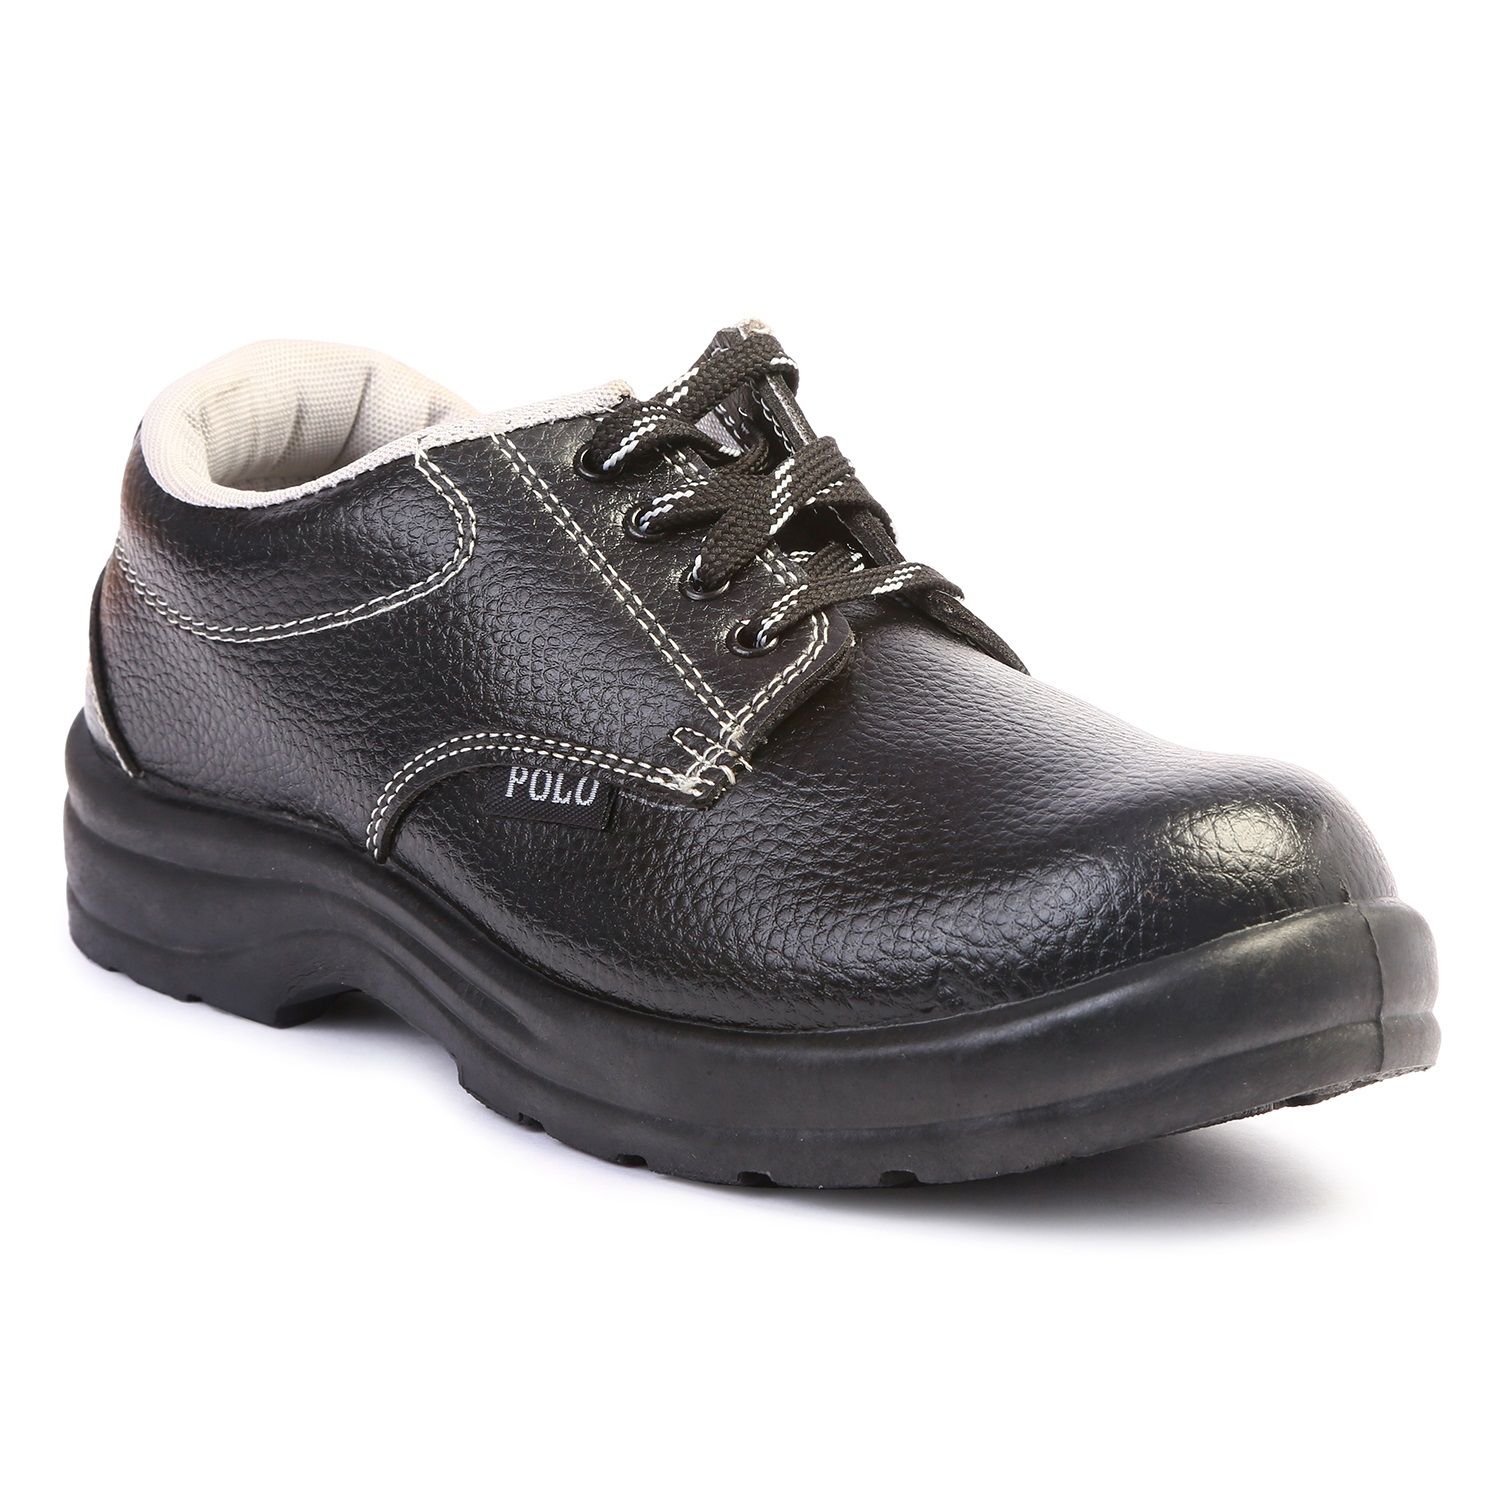 buy polo safety shoes steel toe online XFPUZDE